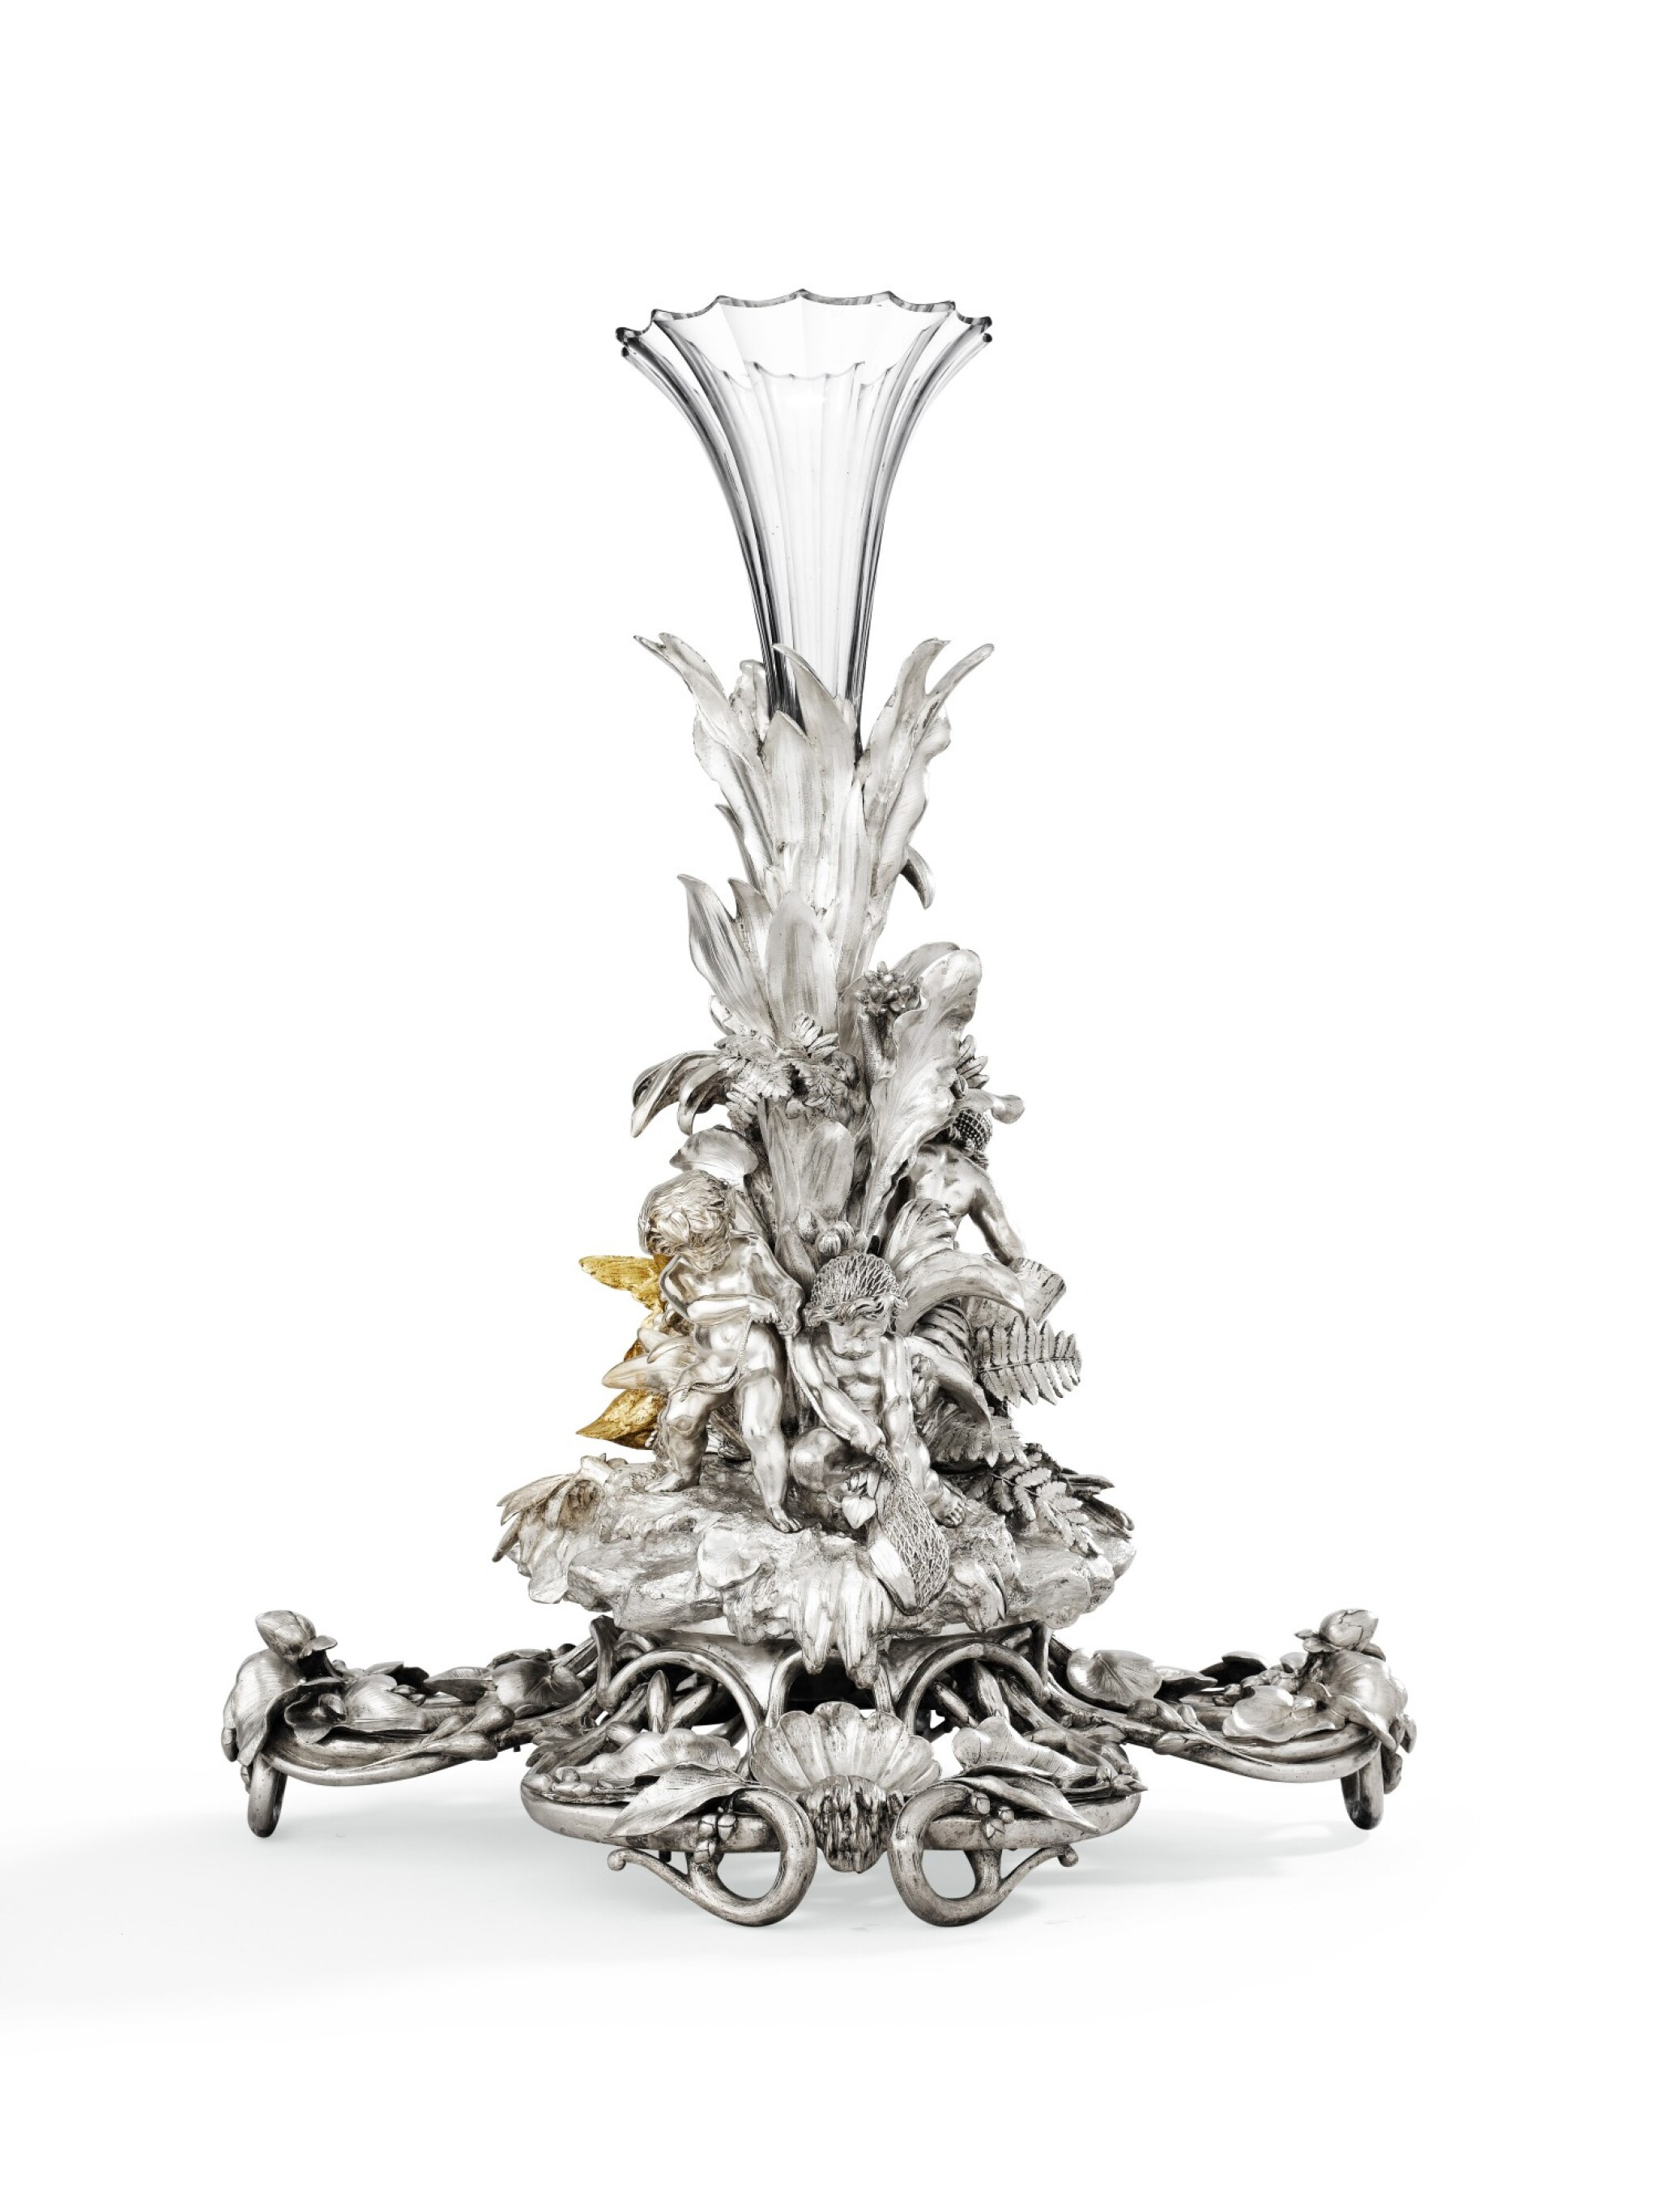 View 1 of Lot 82. A LARGE SILVER-PLATED AND GILT BRONZE CENTREPIECE, CHRISTOFLE, PARIS, CIRCA 1860 | GRAND SURTOUT DE TABLE EN BRONZE ARGENTÉ ET DORÉ PAR CHRISTOFLE, PARIS, VERS 1860 .